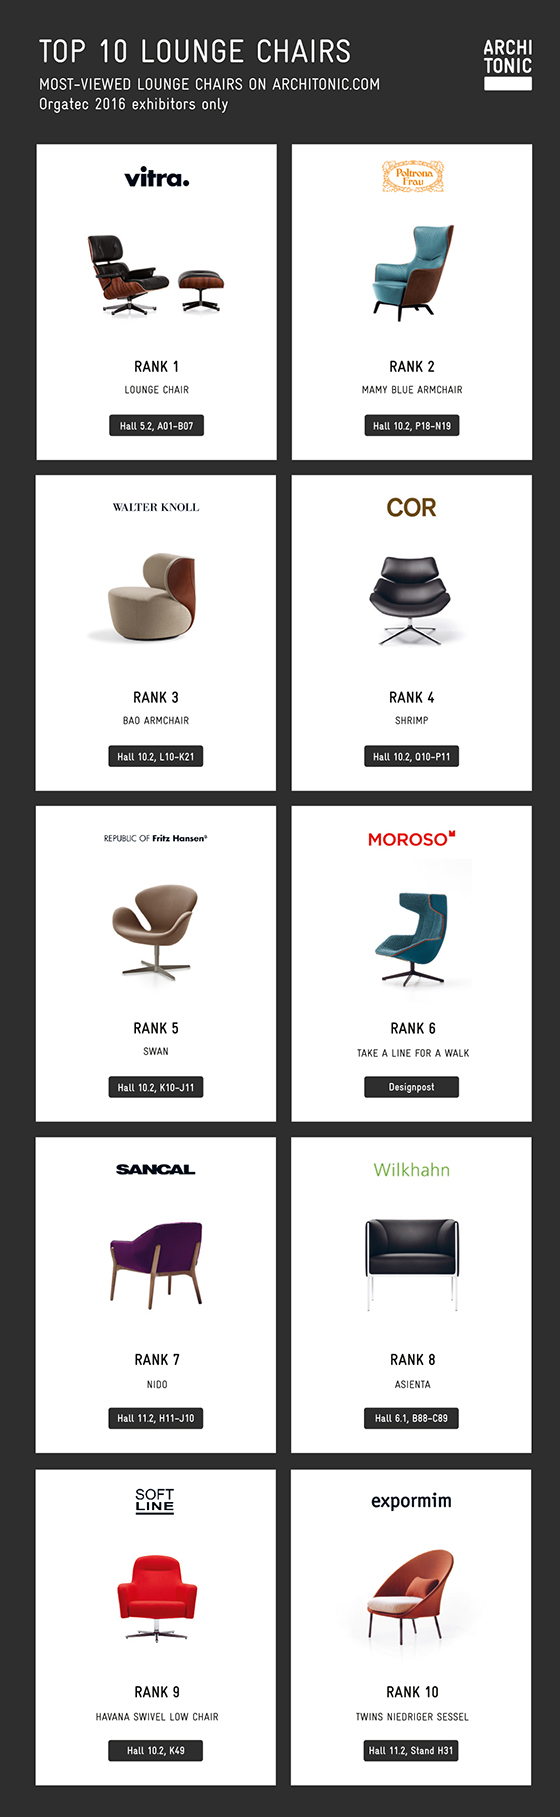 TOP 10 LOUNGE CHAIRS AT ORGATEC 2016 | News